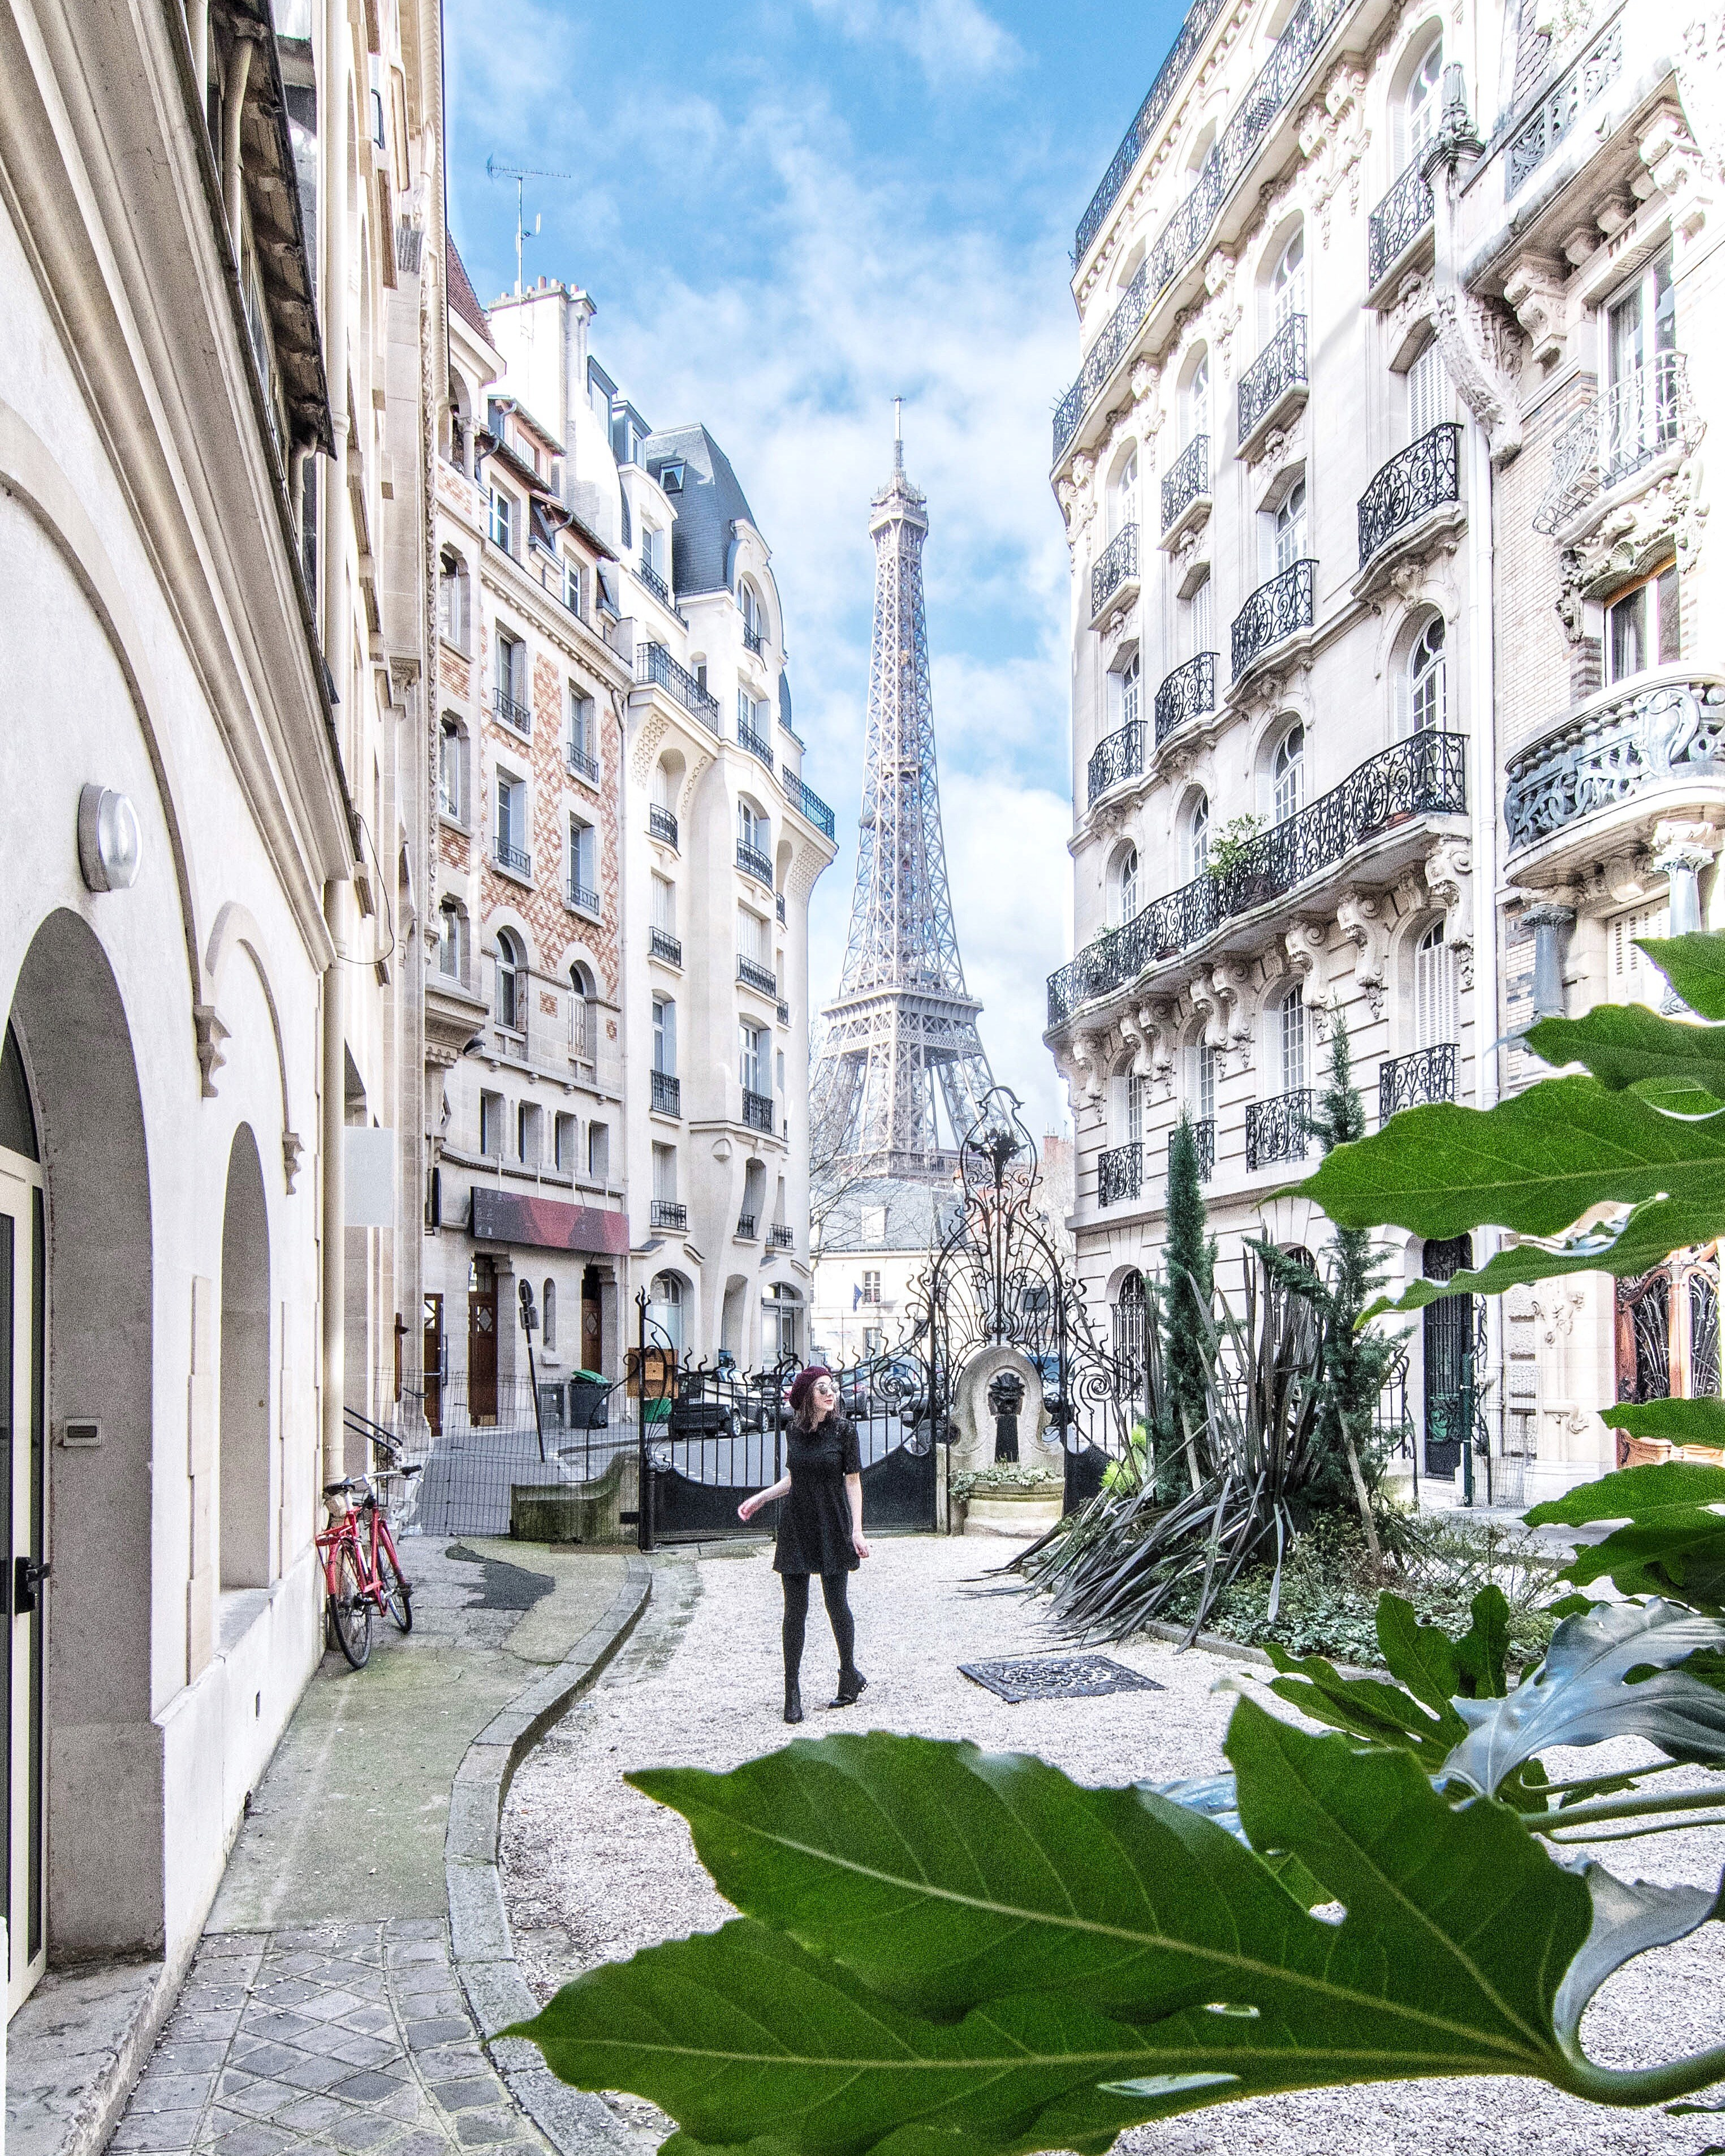 Eiffel tower with cafe in front clipart clip freeuse library THE MOST PHOTO WORTHY SPOTS IN PARIS - Gringa Journeys clip freeuse library